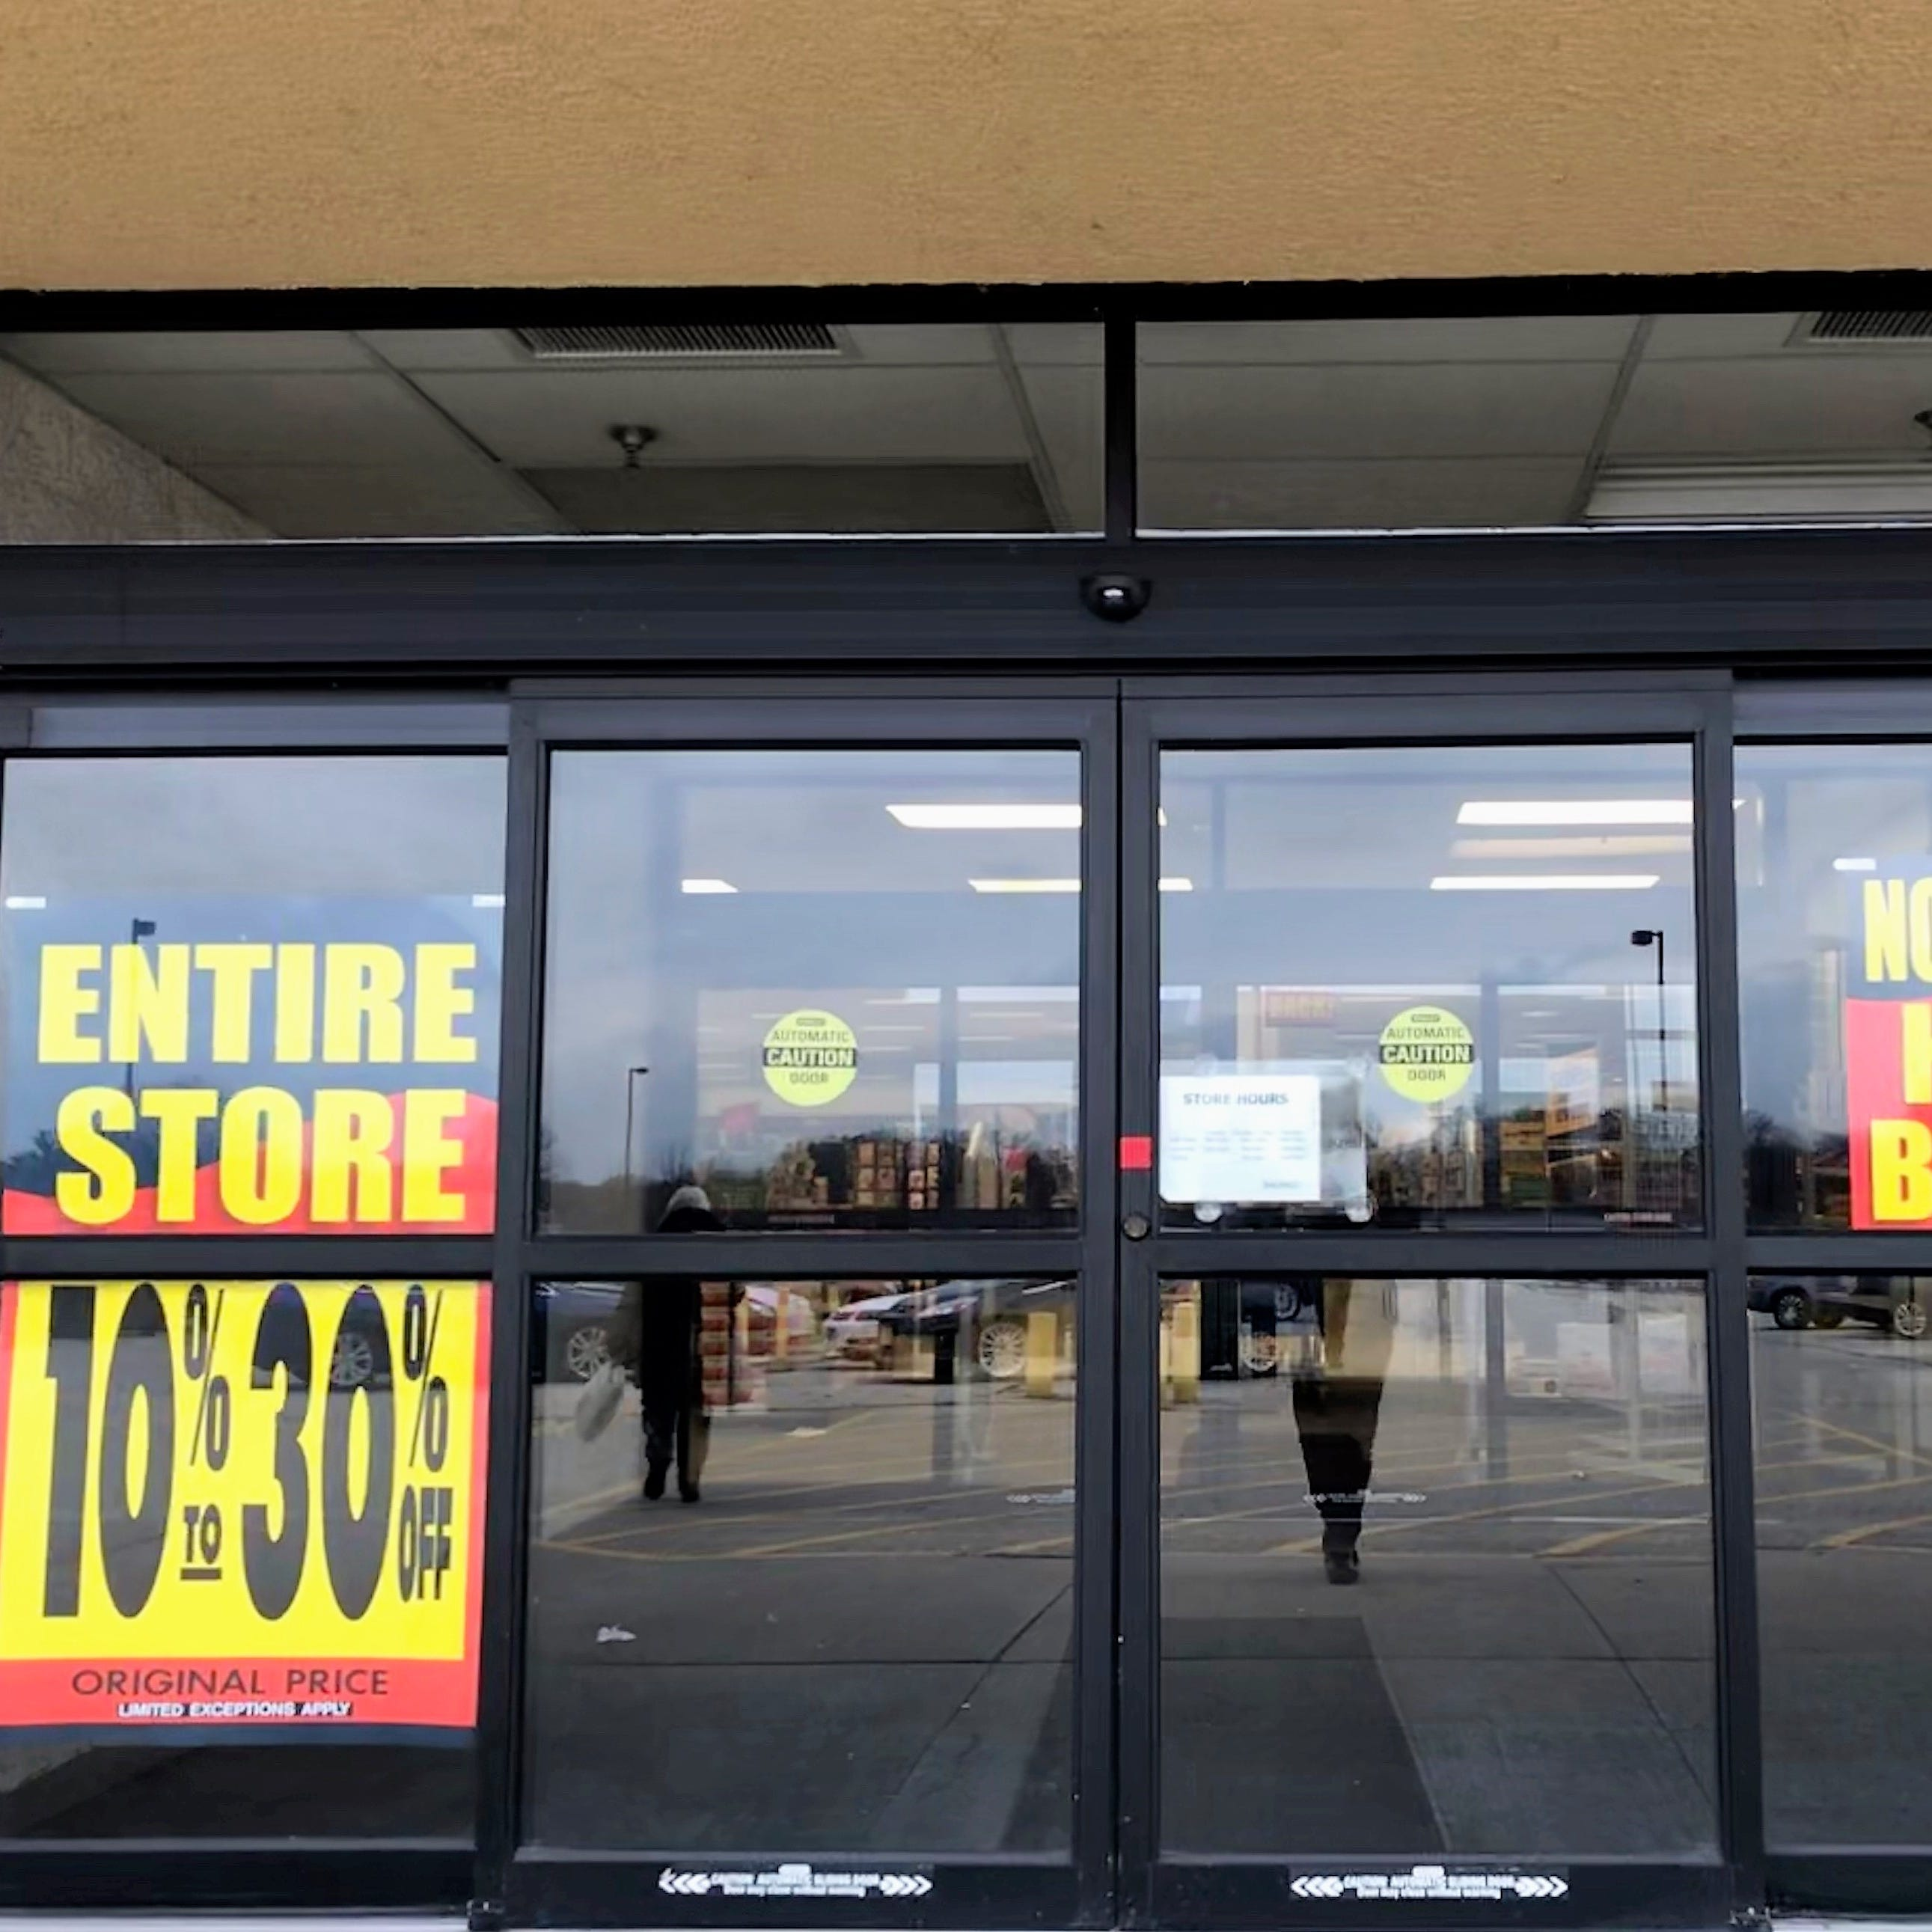 Shopko files for bankruptcy, will close 105 stores, including 16 in Wisconsin